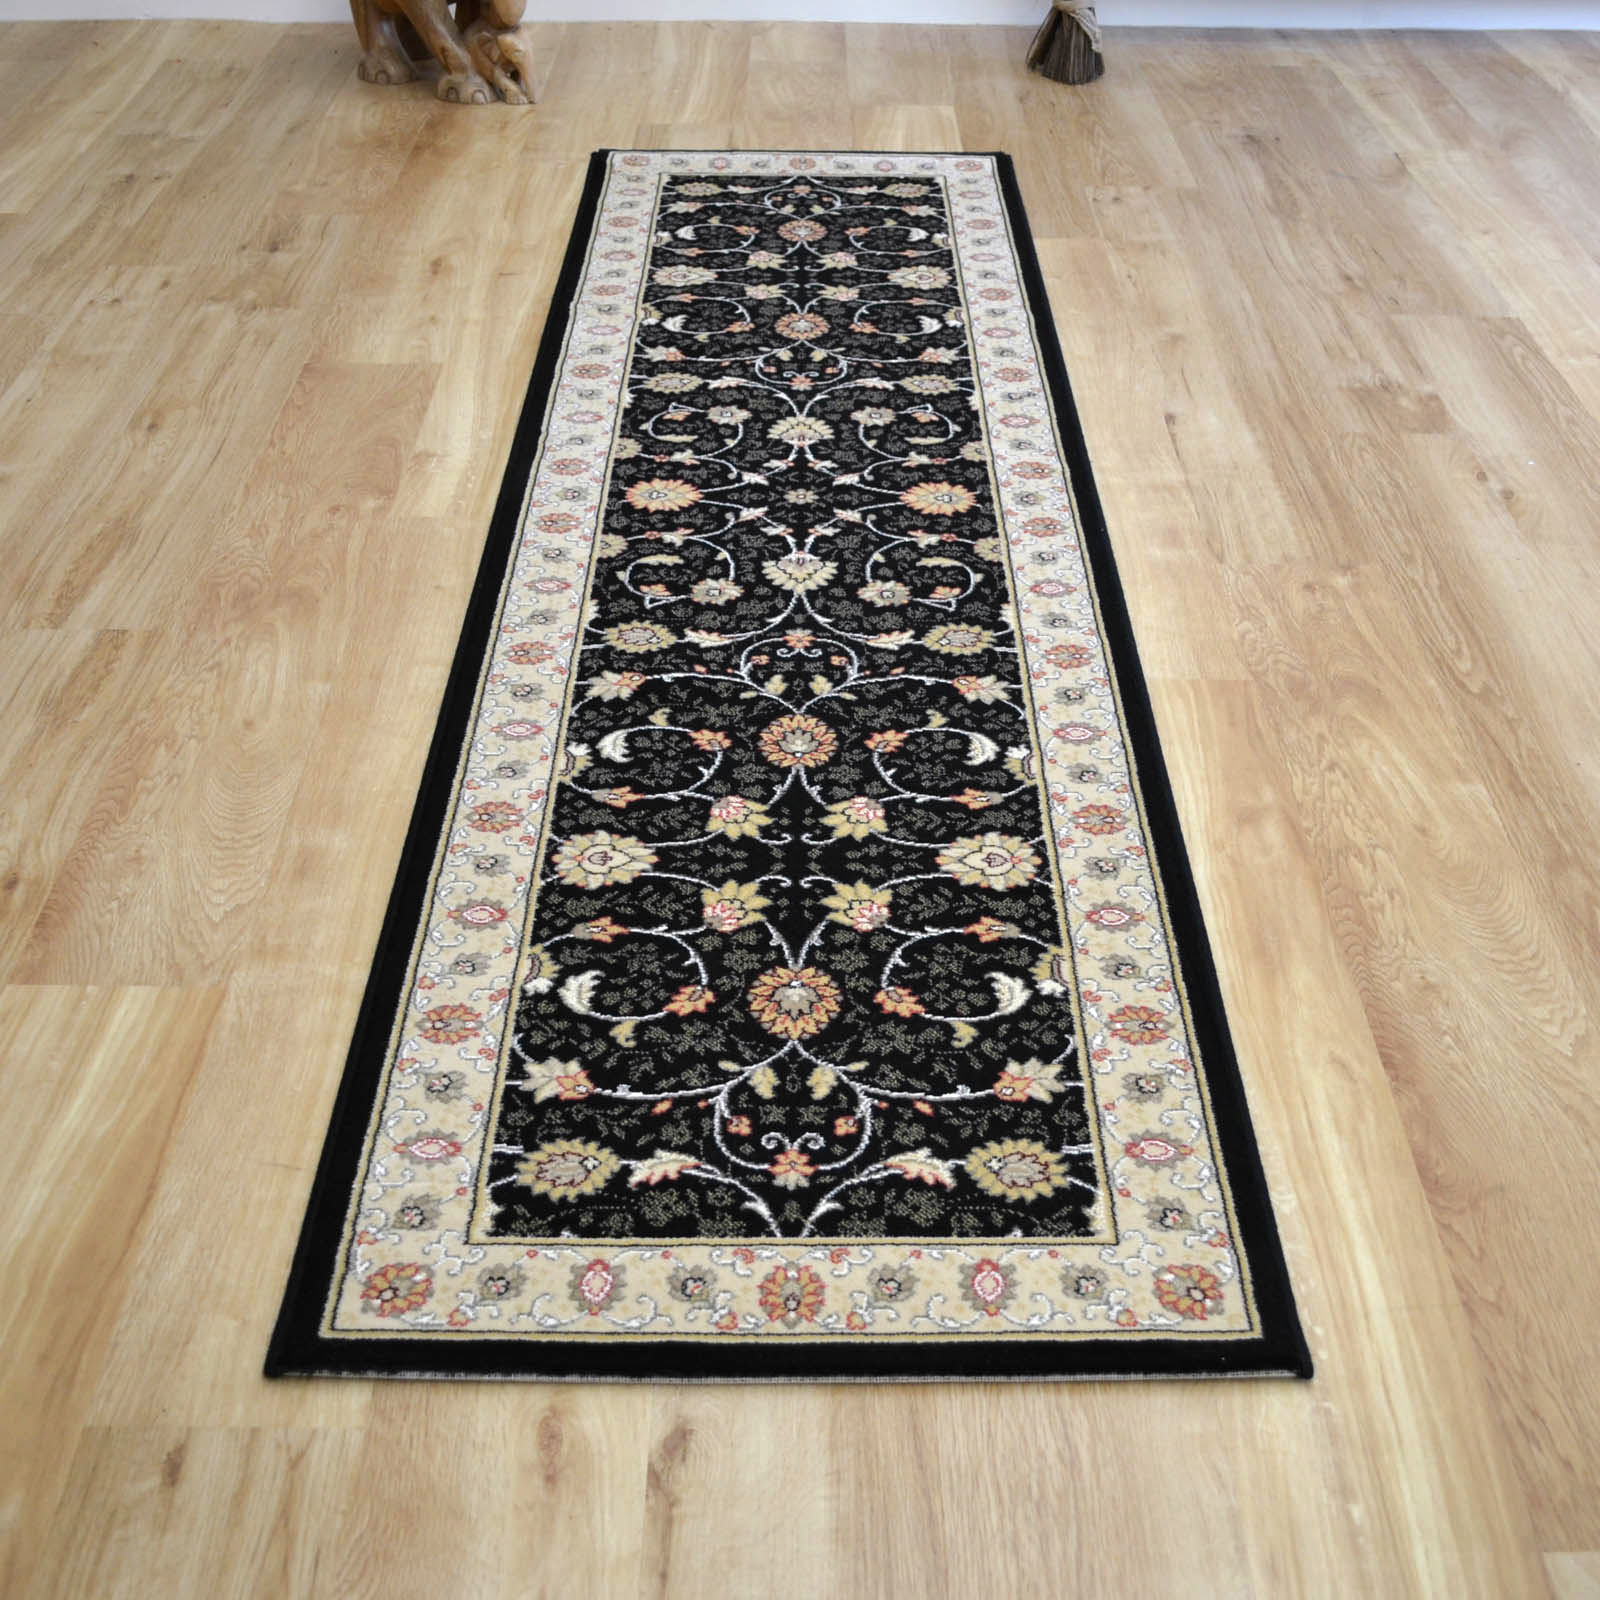 Noble Art Hall Runners 6529 090 in Black